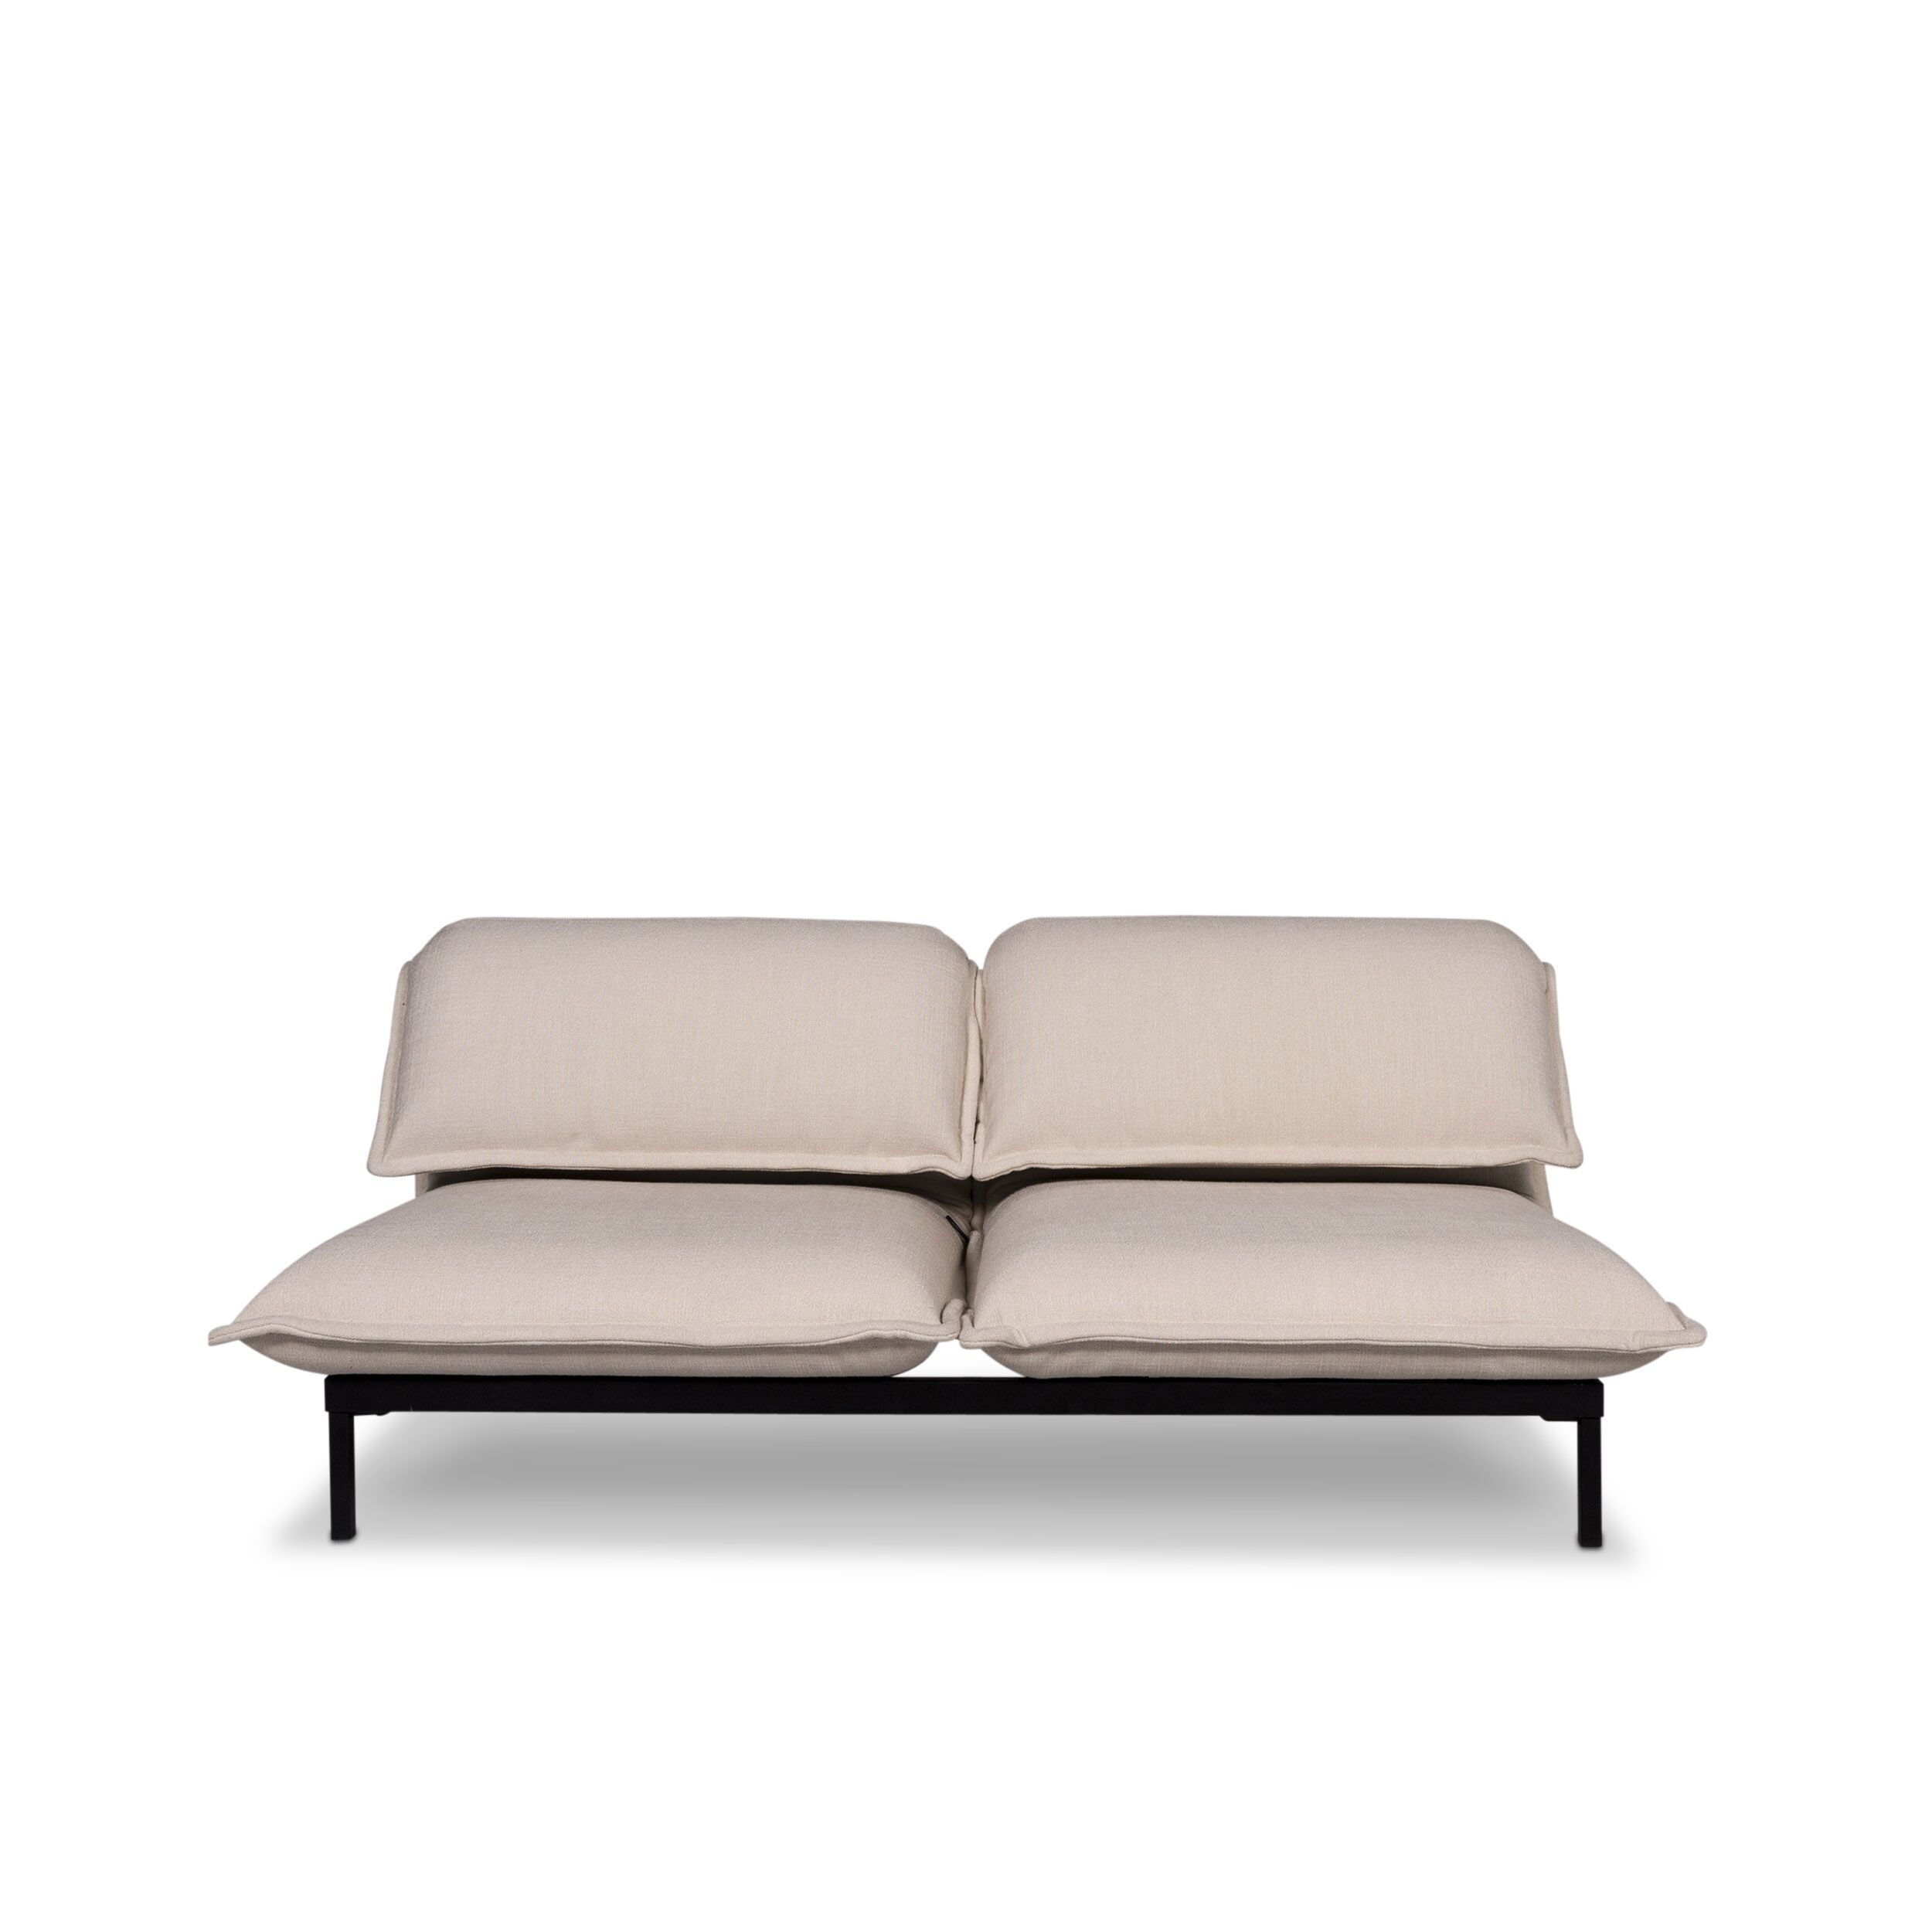 Rolf Benz Nova Designer Fabric Sofa Two Seater Relax Sofa Bed Function Couch 9861